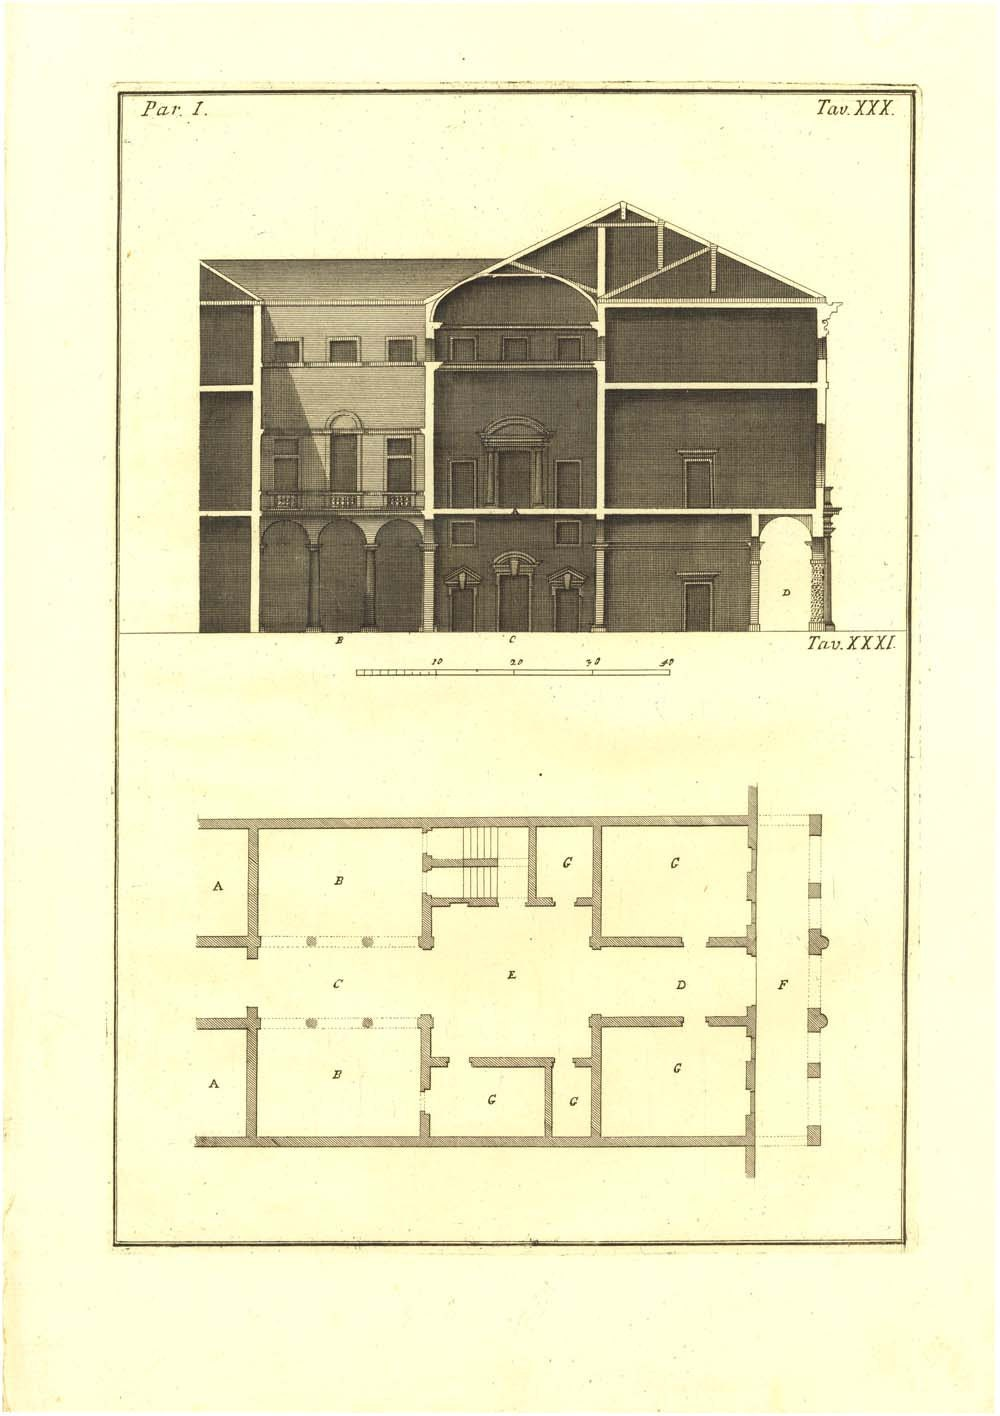 1760 Architectural Print Palladio House of Ettore Abriani Drawing by Muttoni